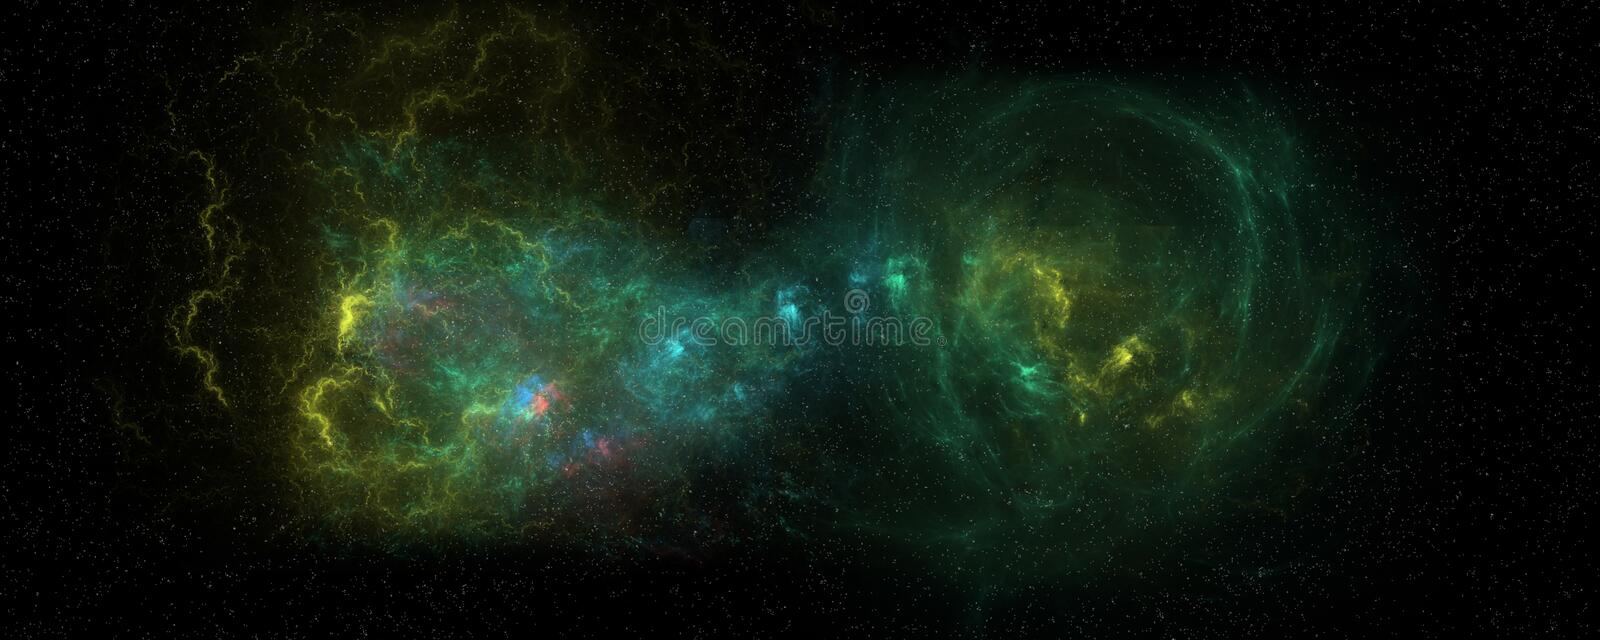 Extremely detailed and realistic high resolution illustration of two merging galaxies. Shot from Space. Extremely detailed and realistic high resolution concept stock illustration